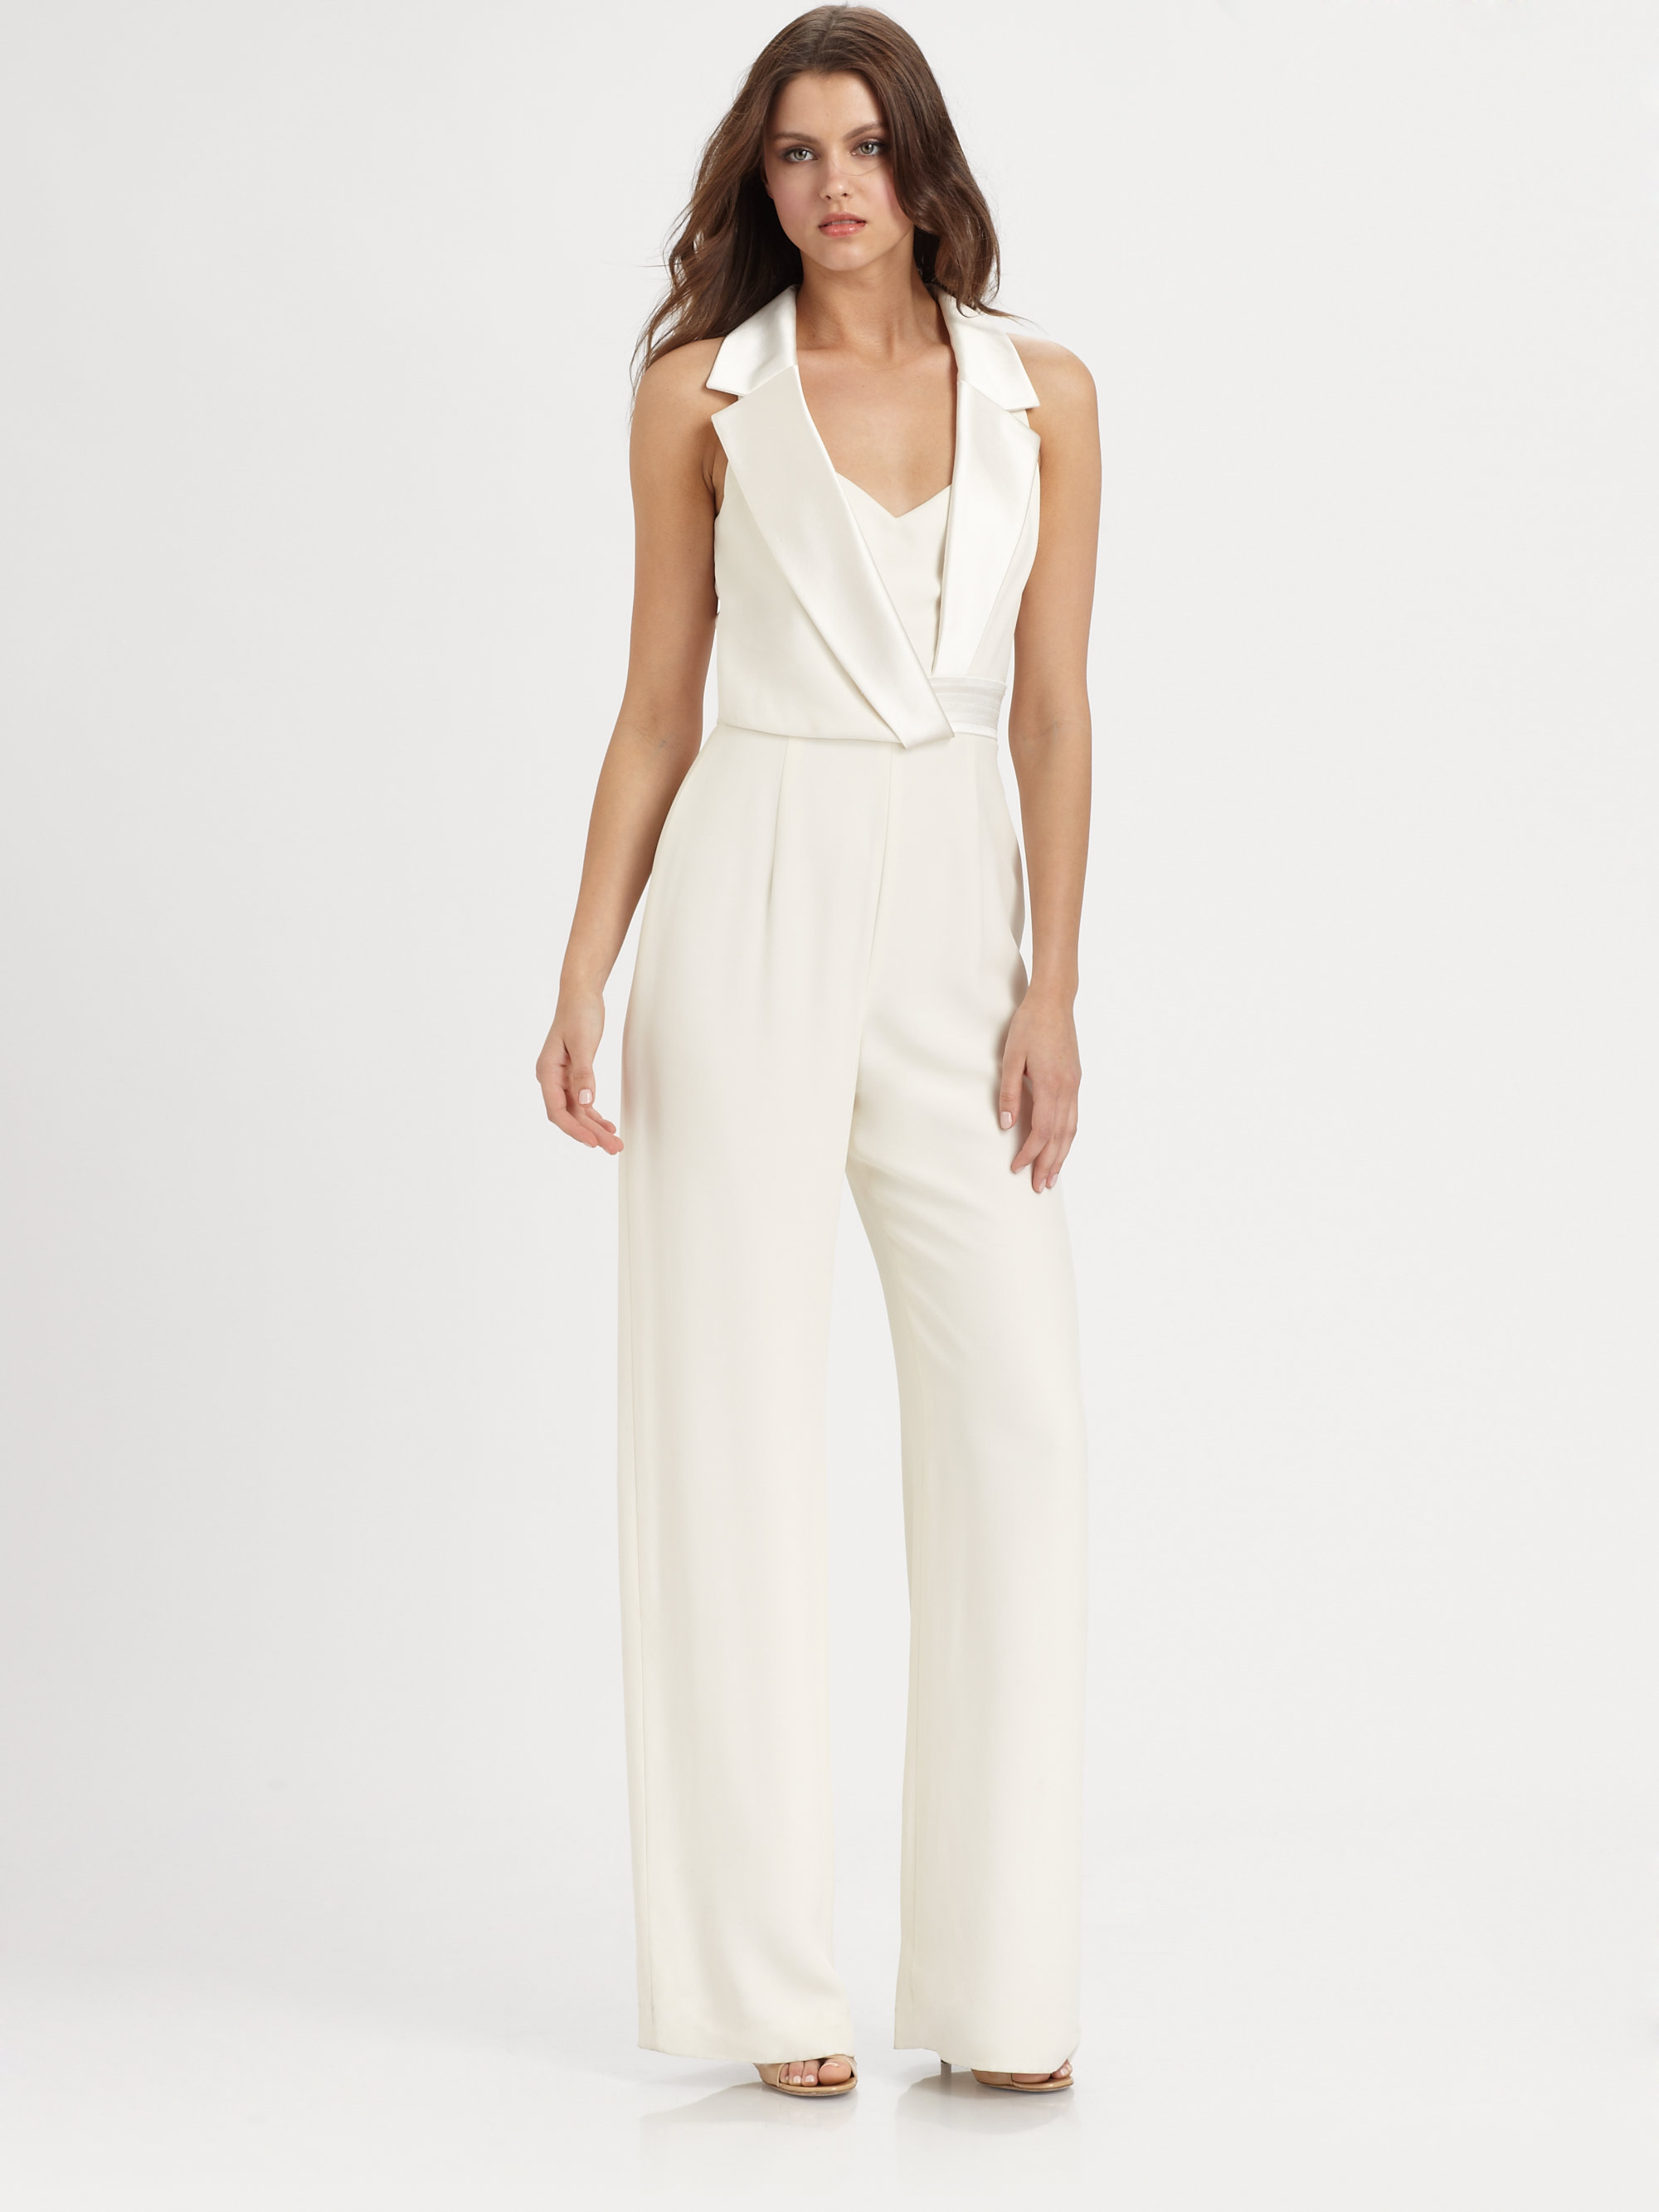 Sexy Jumpsuits & Rompers for Women. bebe designs super-cute jumpsuits and rompers for women in a range of silhouettes, colors, prints and fabrics that are easy to dress up or down.